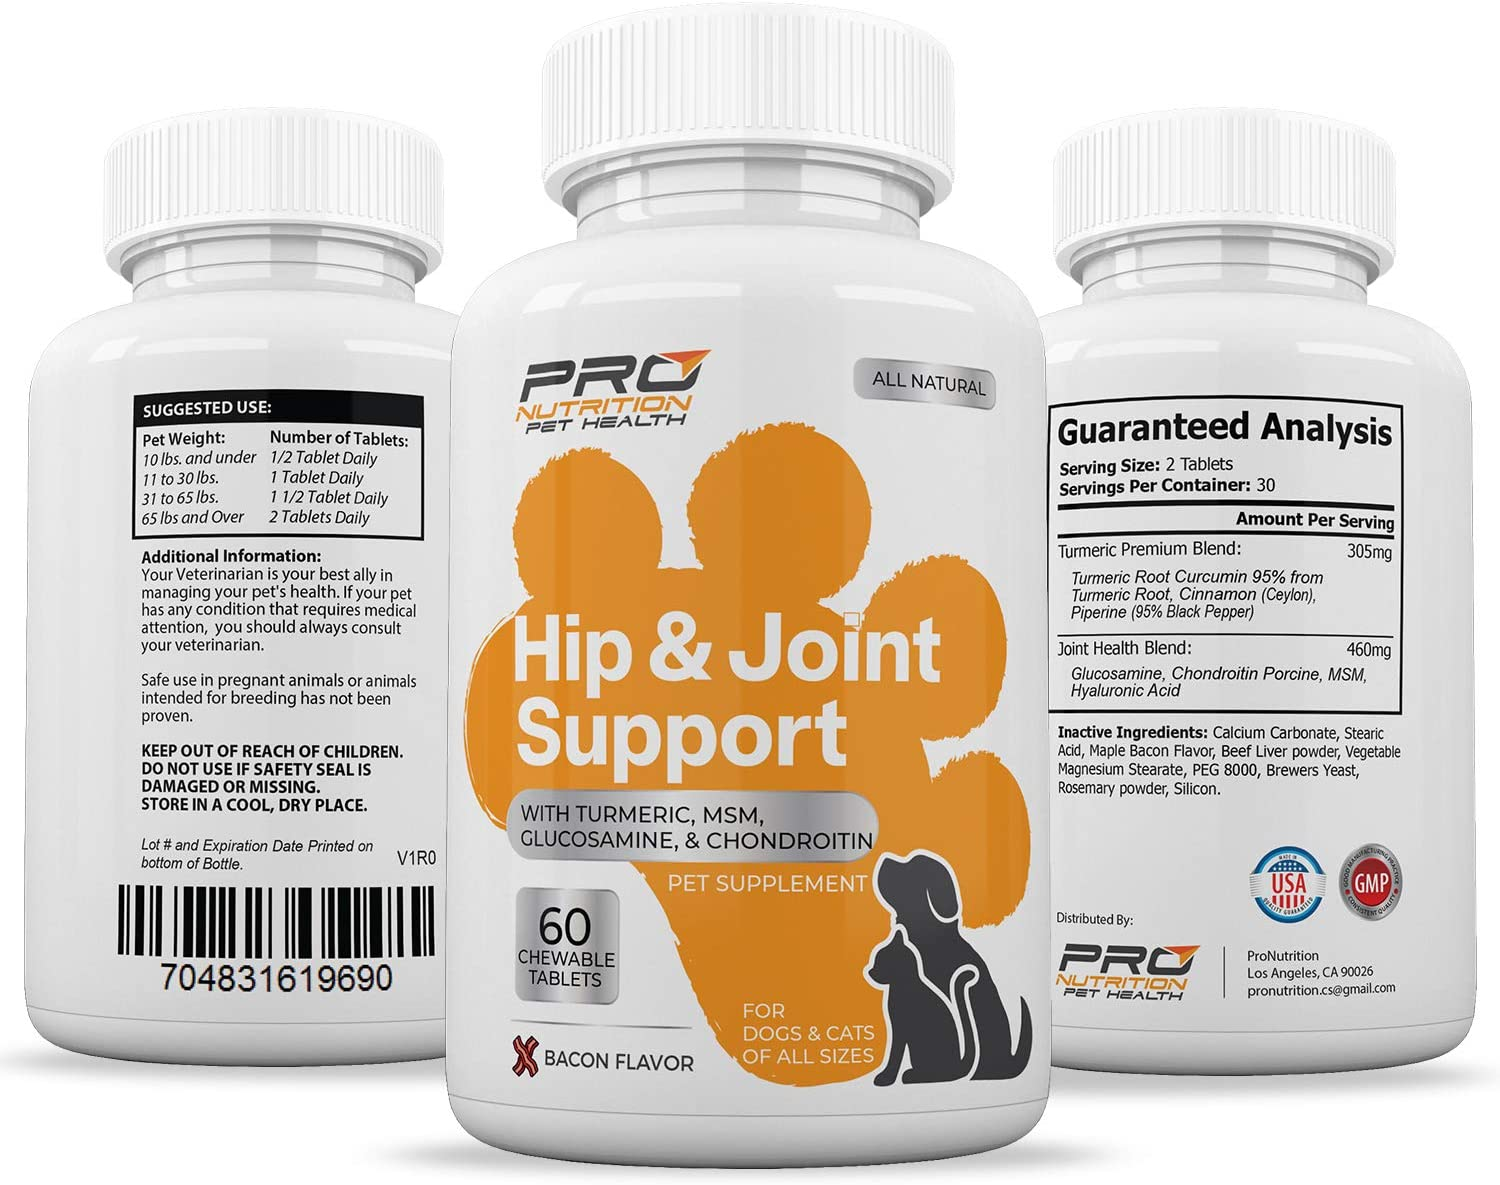 Hip & Joint Supplement- Improves Mobility, Joint Flexibility, & Arthritis Pain Relief. Powerful Ingredients Turmeric, Chondroitin, Glucosamine & MSM. Soft Chewable Bacon Flavor Tablet for Dogs & Cats.